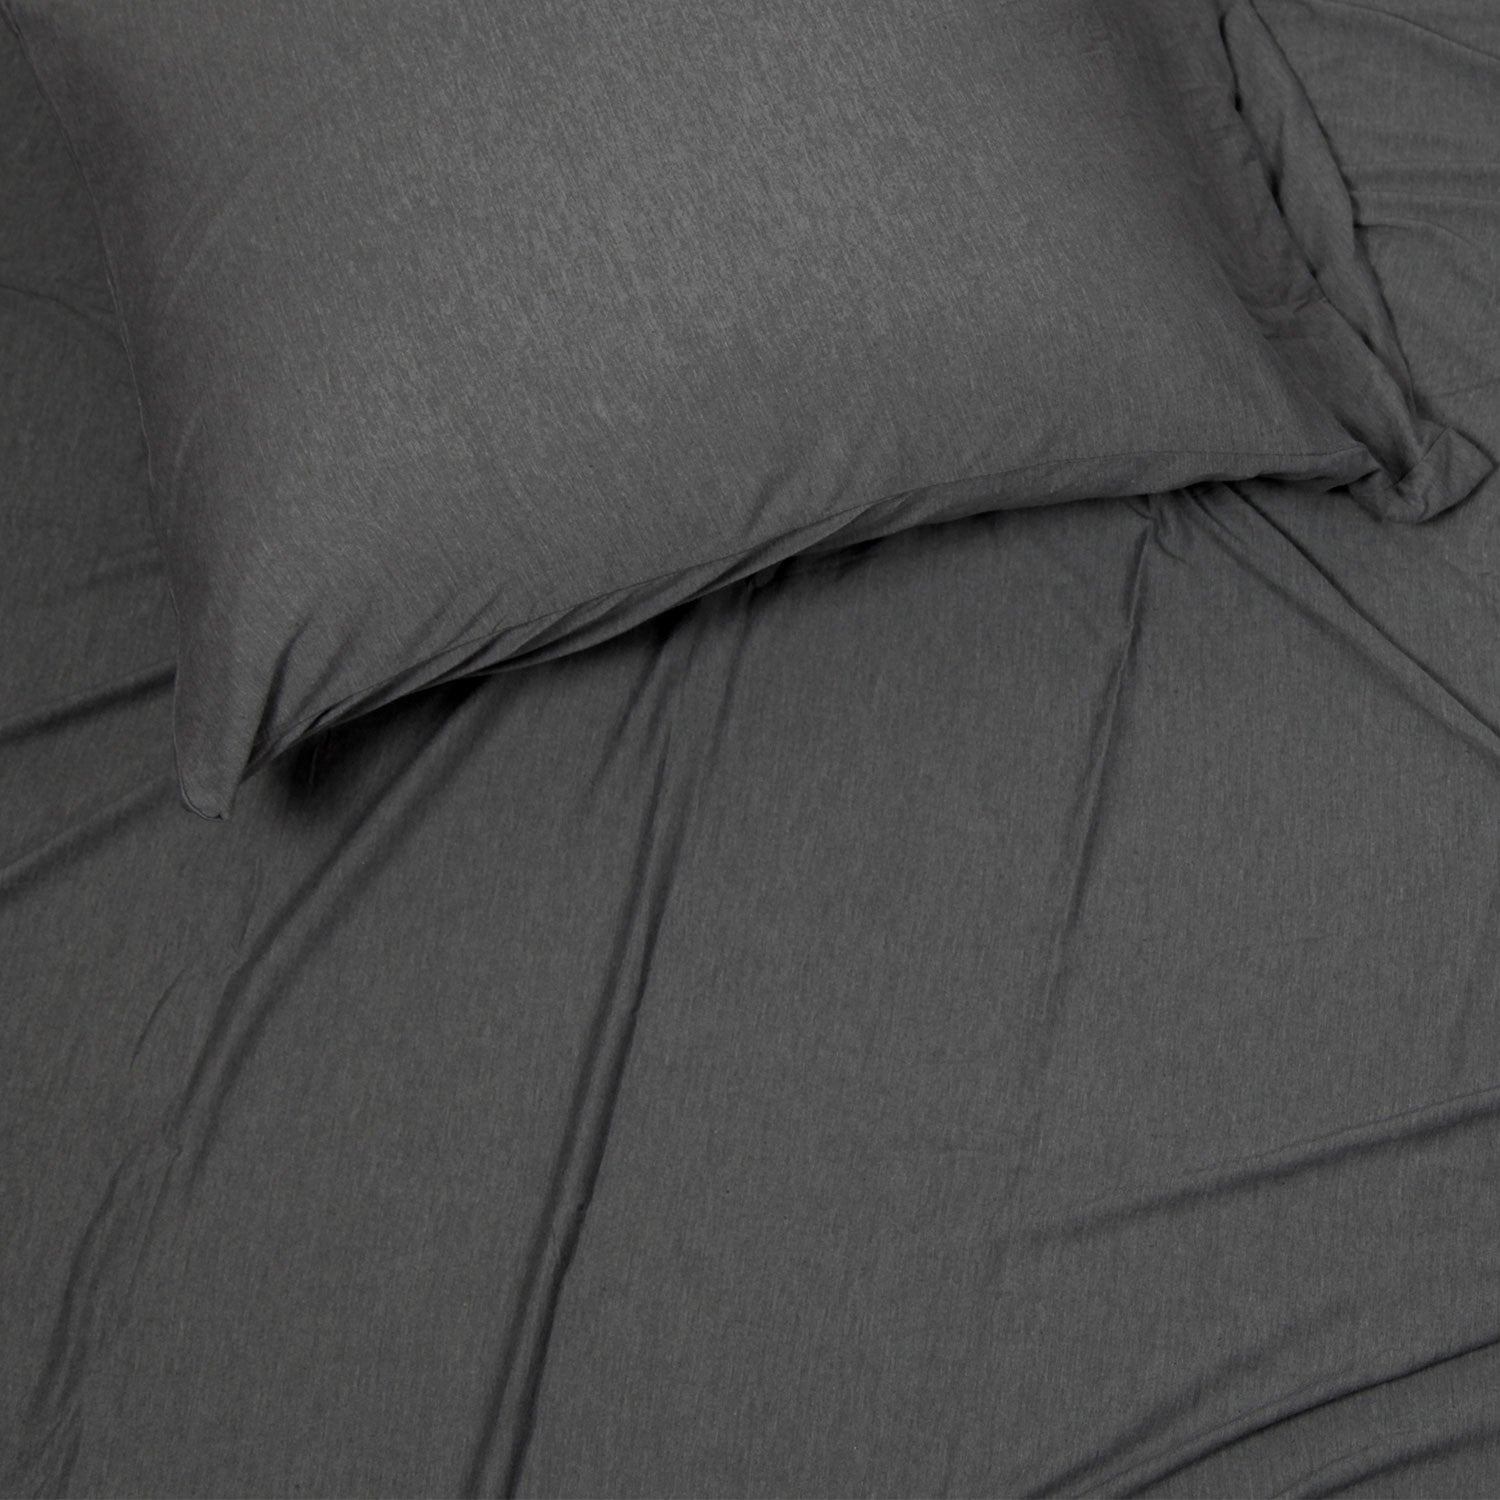 Brooklyn Flat Jersey Sheet Set - Charcoal Full